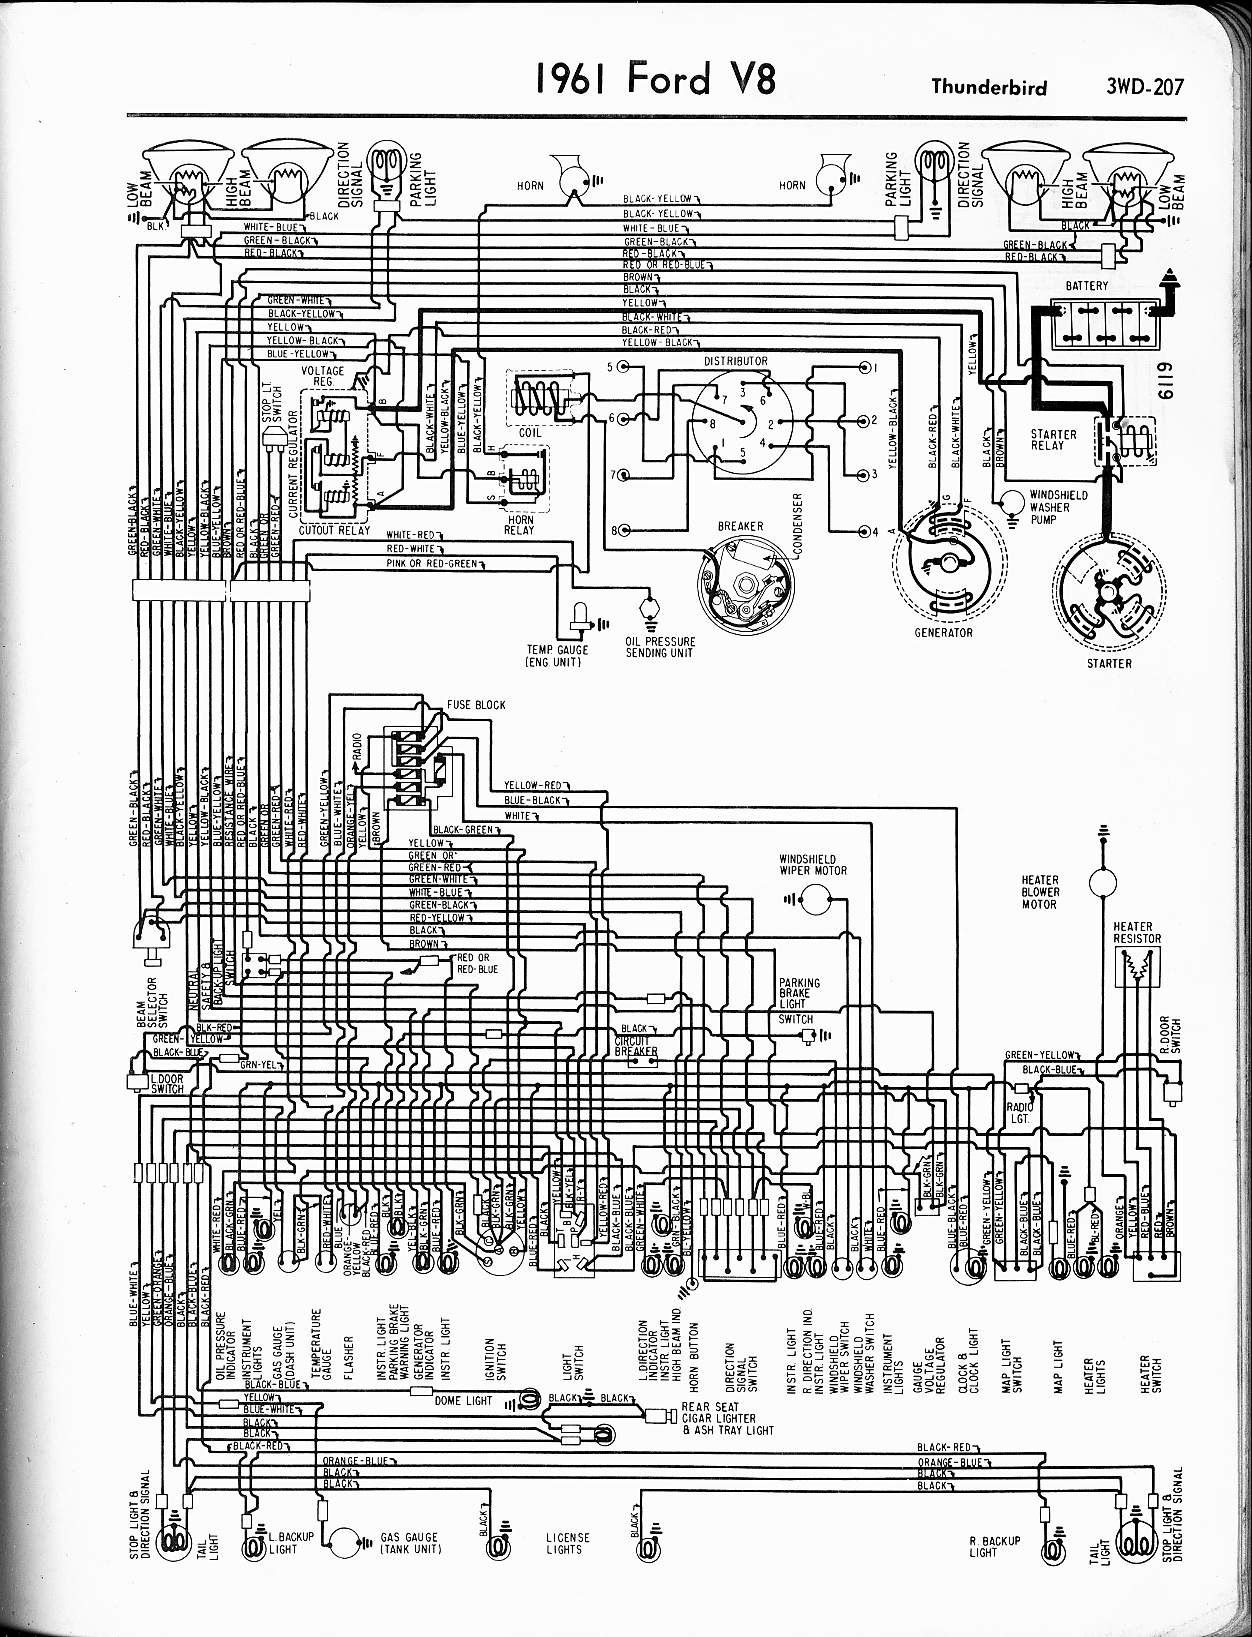 MWire5765 207 57 65 ford wiring diagrams wiring diagrams for 2017 ford trucks at webbmarketing.co